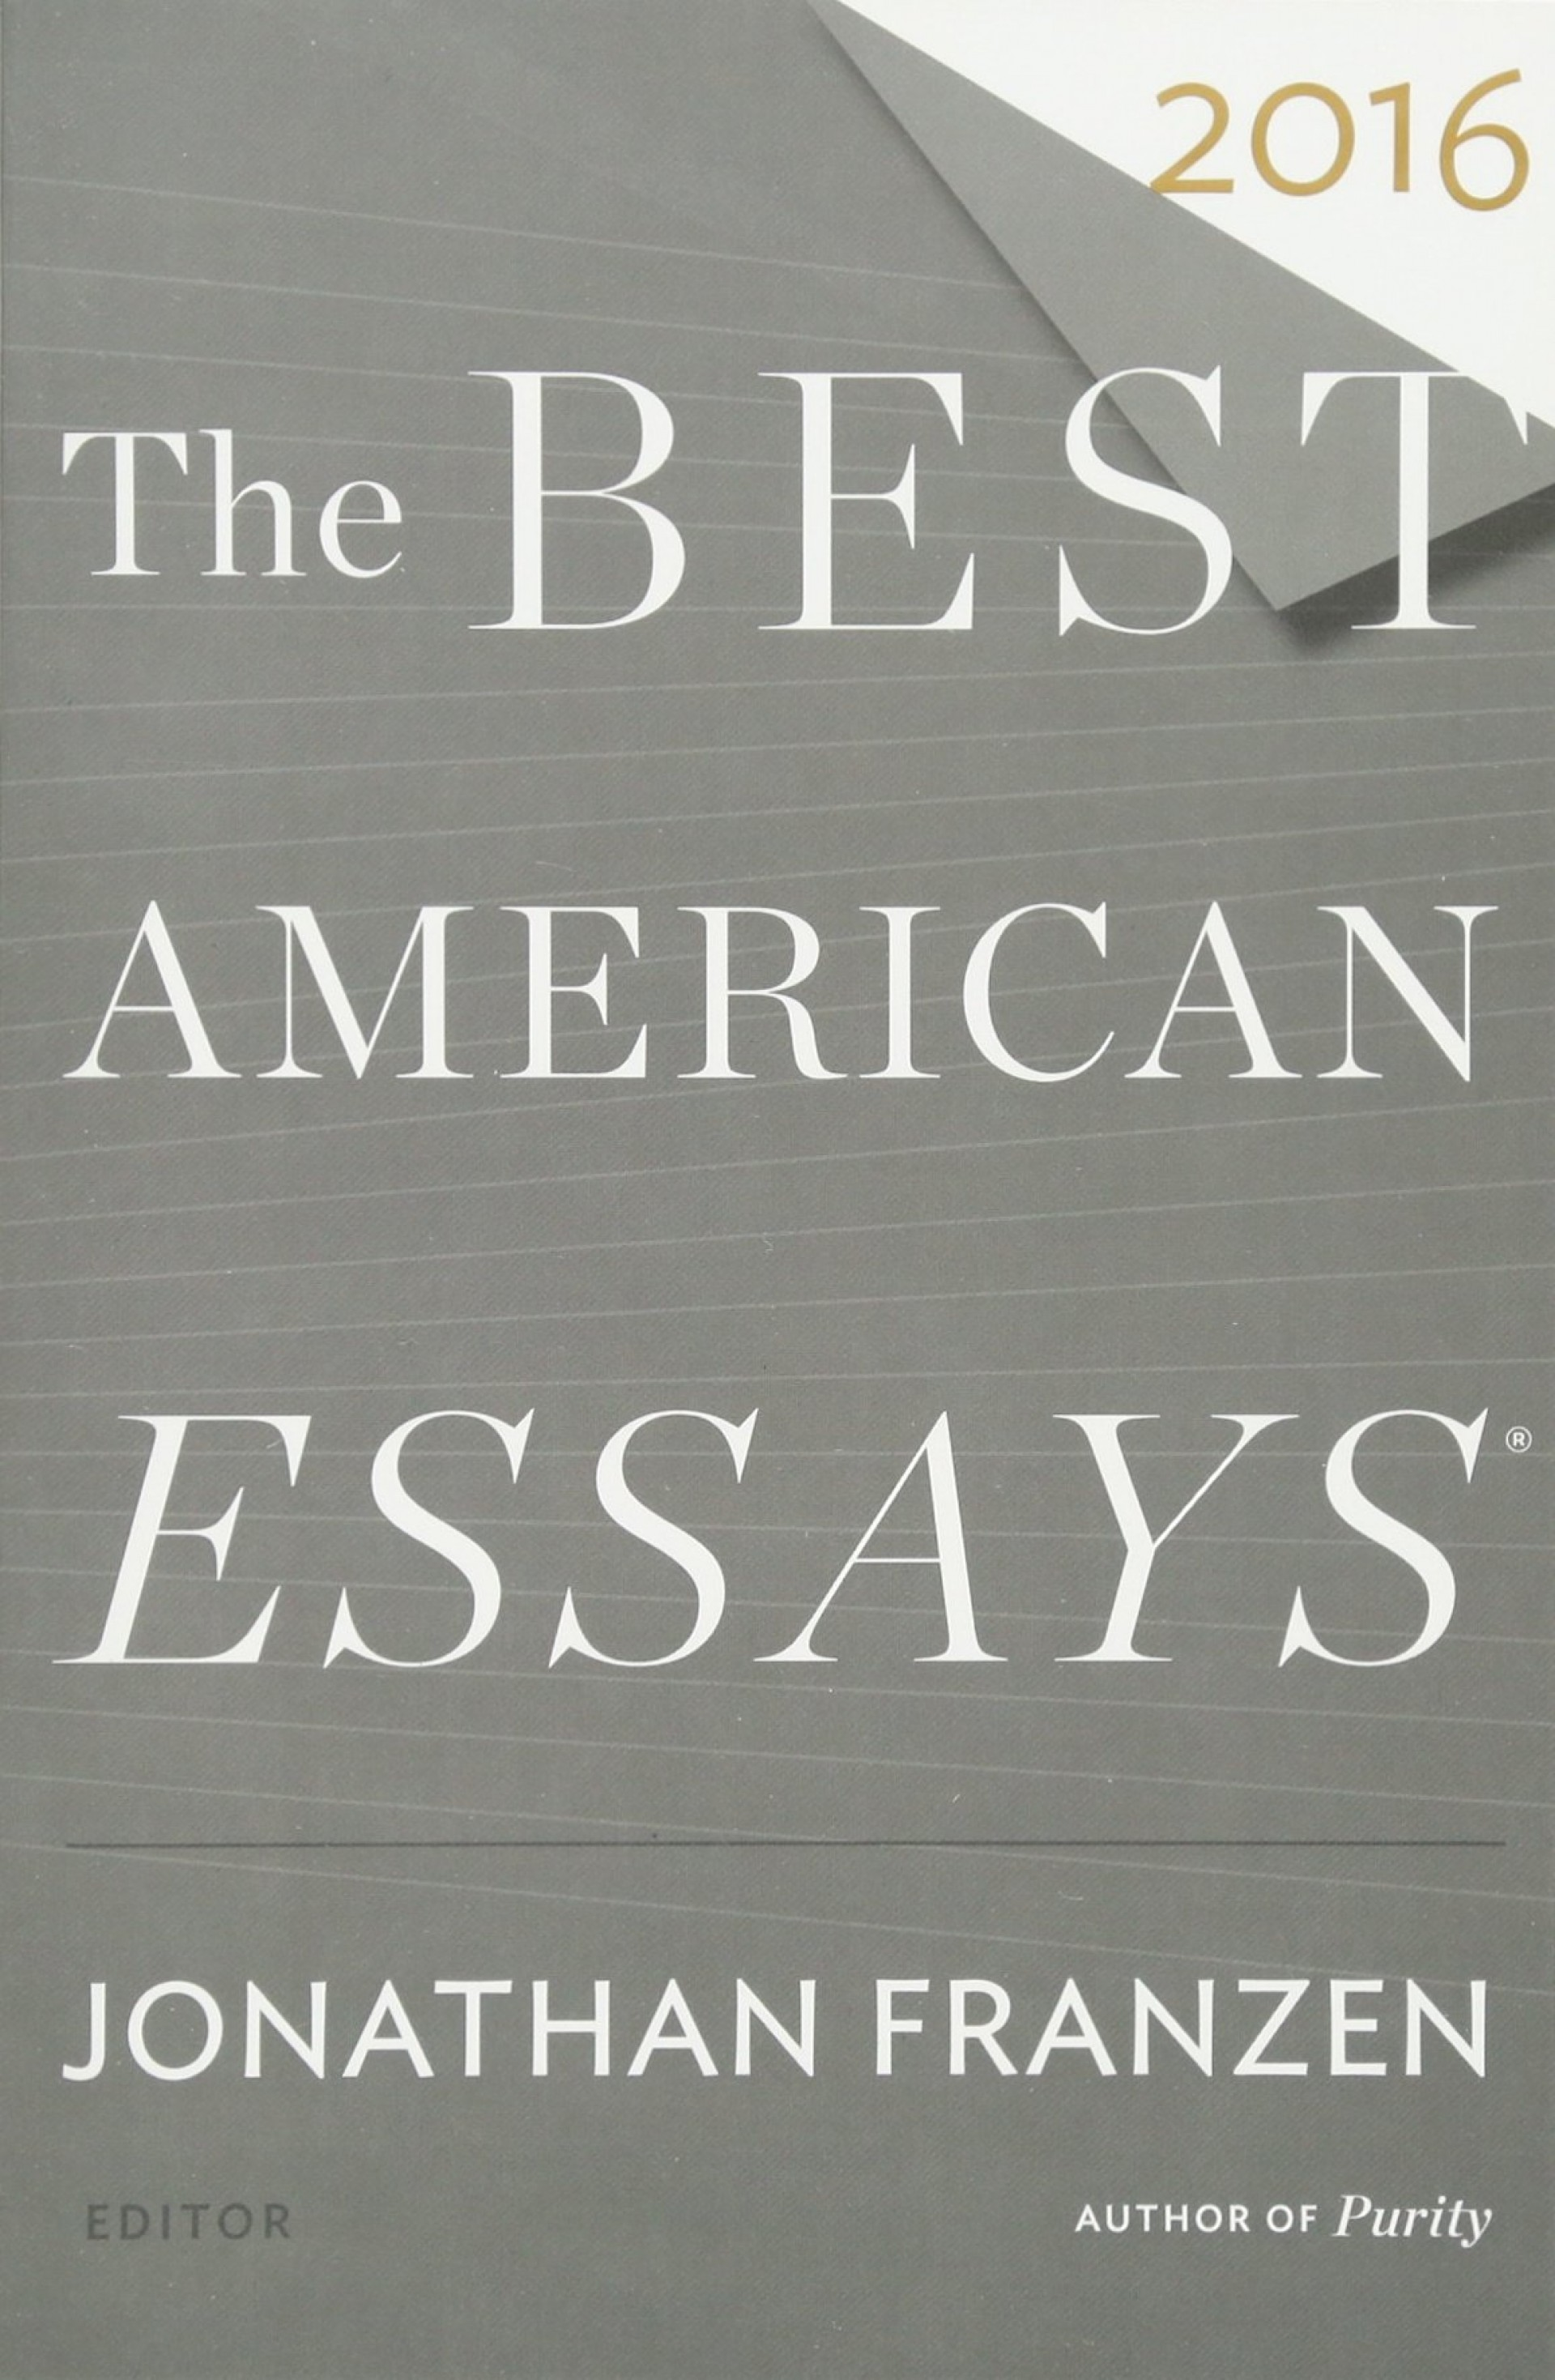 005 Best American Essays 71a6bhsgsdl Essay Striking 2017 Table Of Contents The Century Pdf 1920